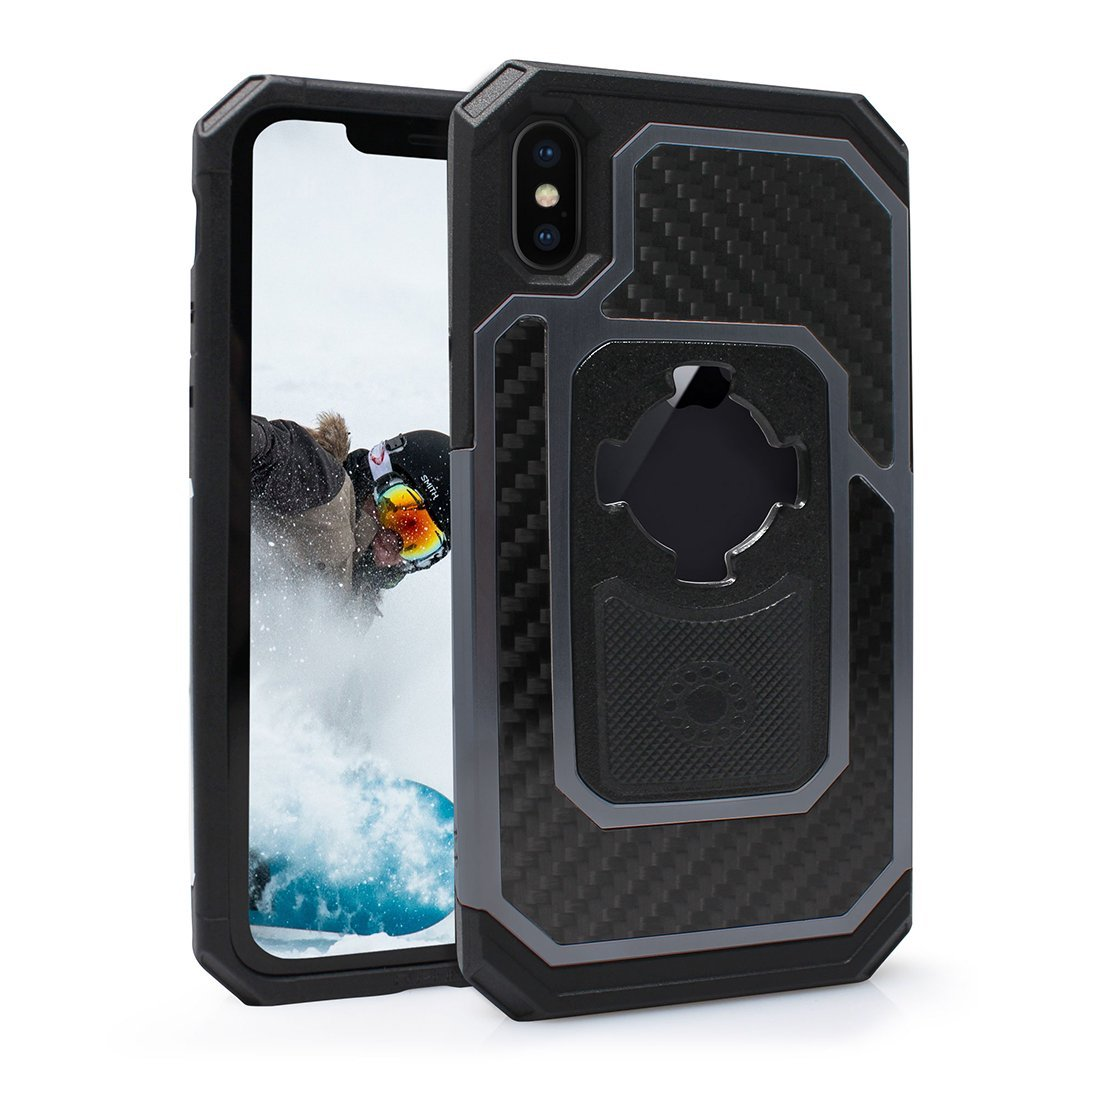 Most Rugged iPhone X Cases